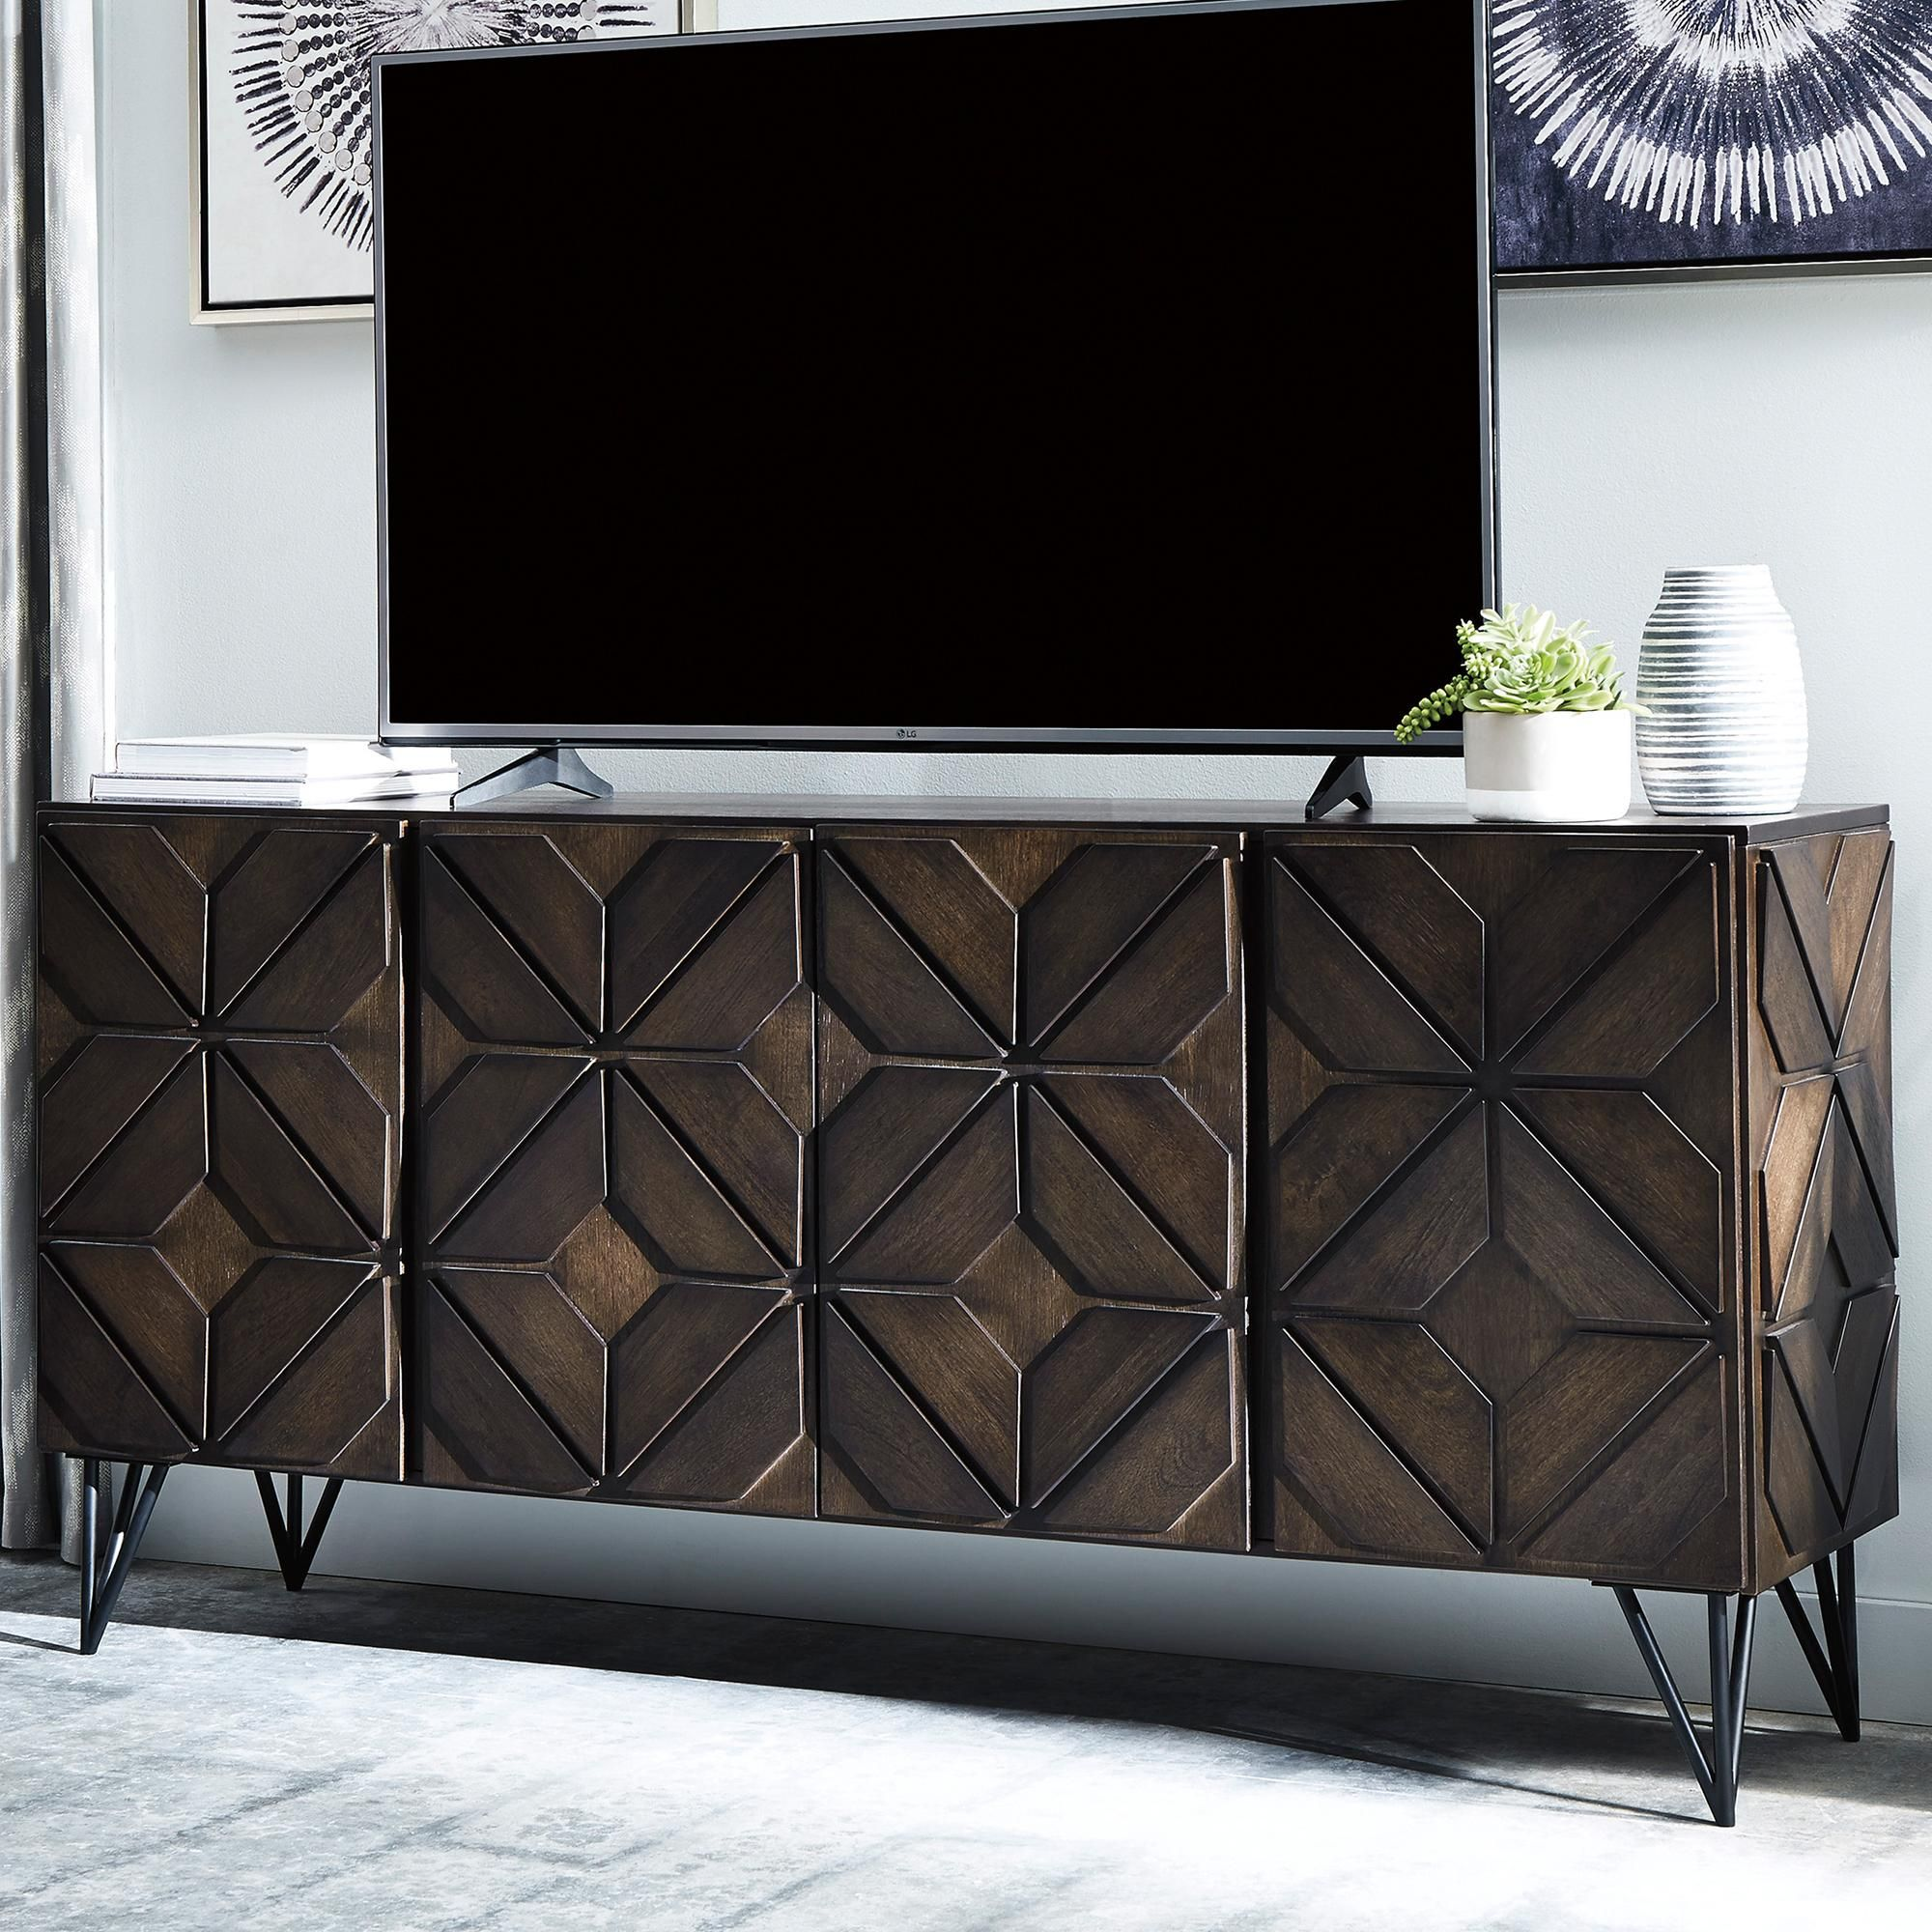 Signature Design By Ashley Chasinfield 72 Large Tv Stand In Dark Espresso Brown Nfm Large Tv Stands Tv Stand Dark Brown Living Room Tv Stand